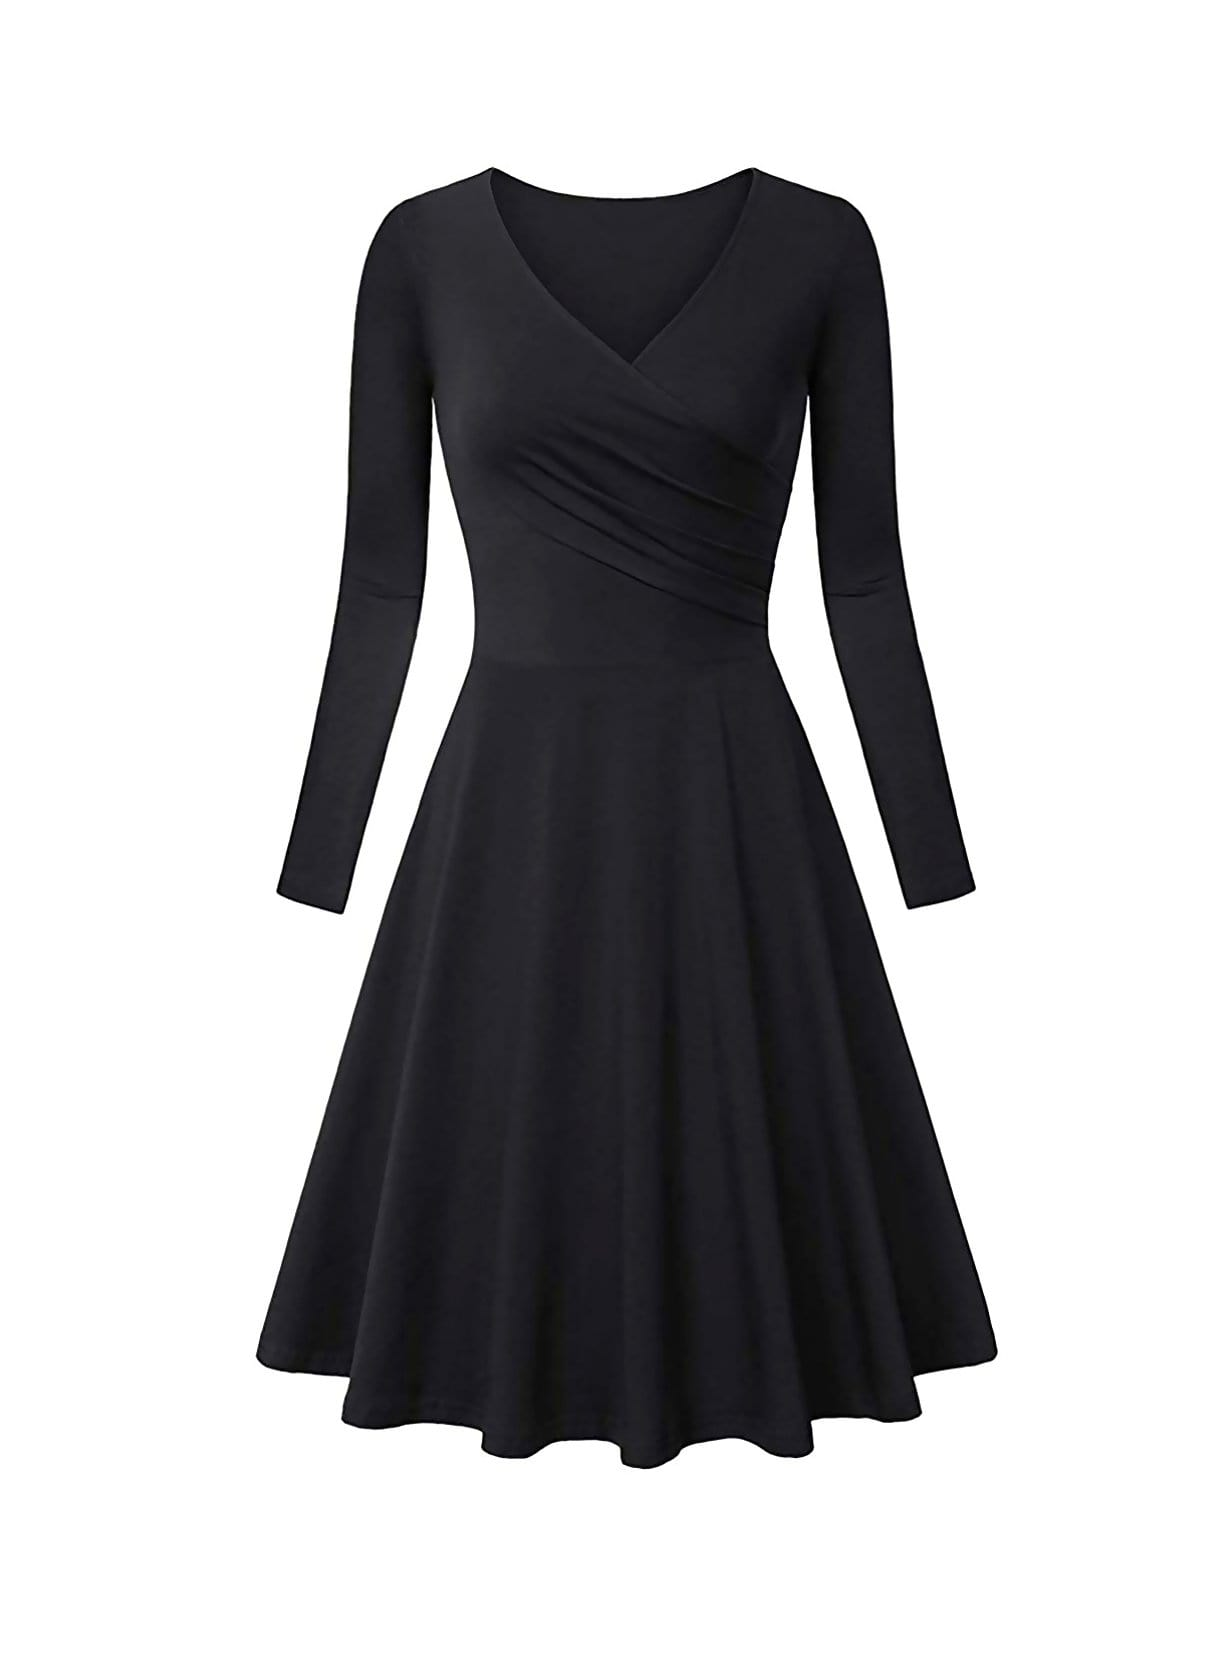 DAILYHAUTE Women's dress BLACK / S Haute Edition Women's V-Neck Long Sleeve Skater Dress